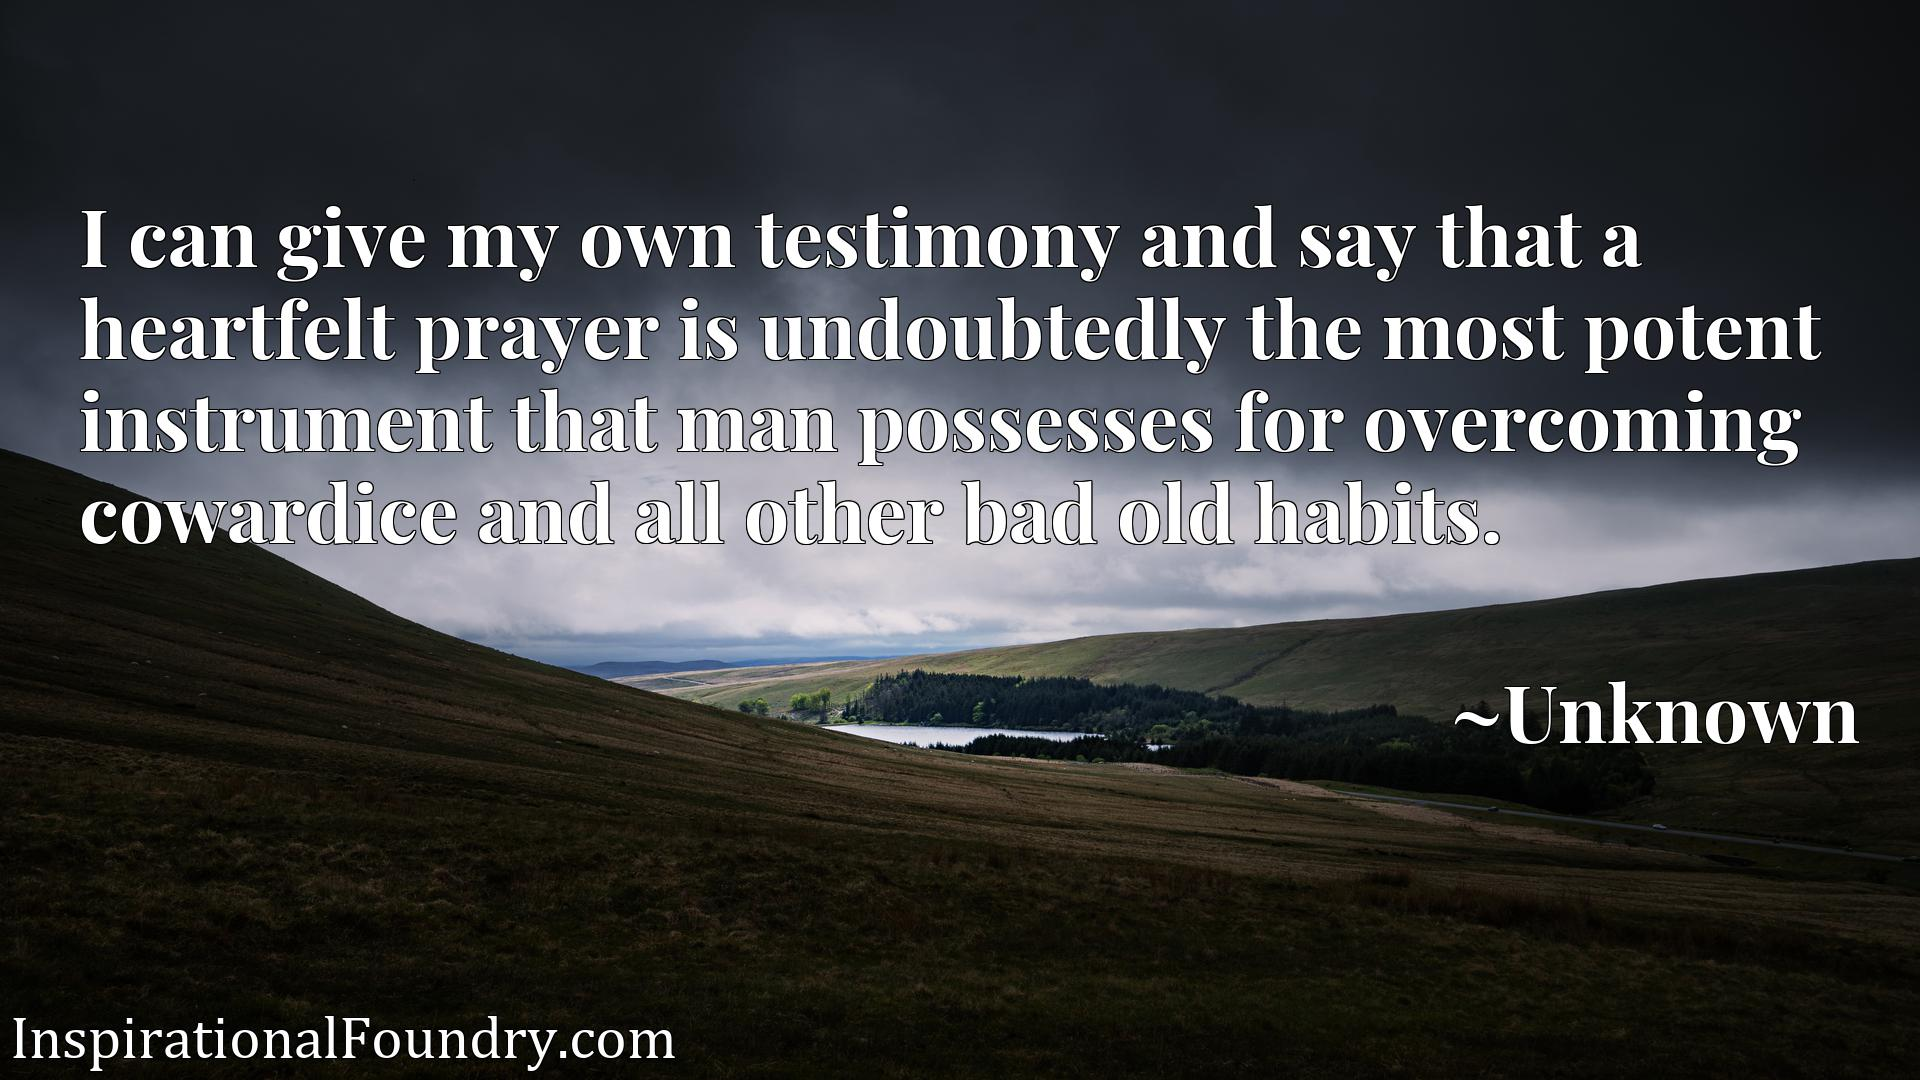 I can give my own testimony and say that a heartfelt prayer is undoubtedly the most potent instrument that man possesses for overcoming cowardice and all other bad old habits.